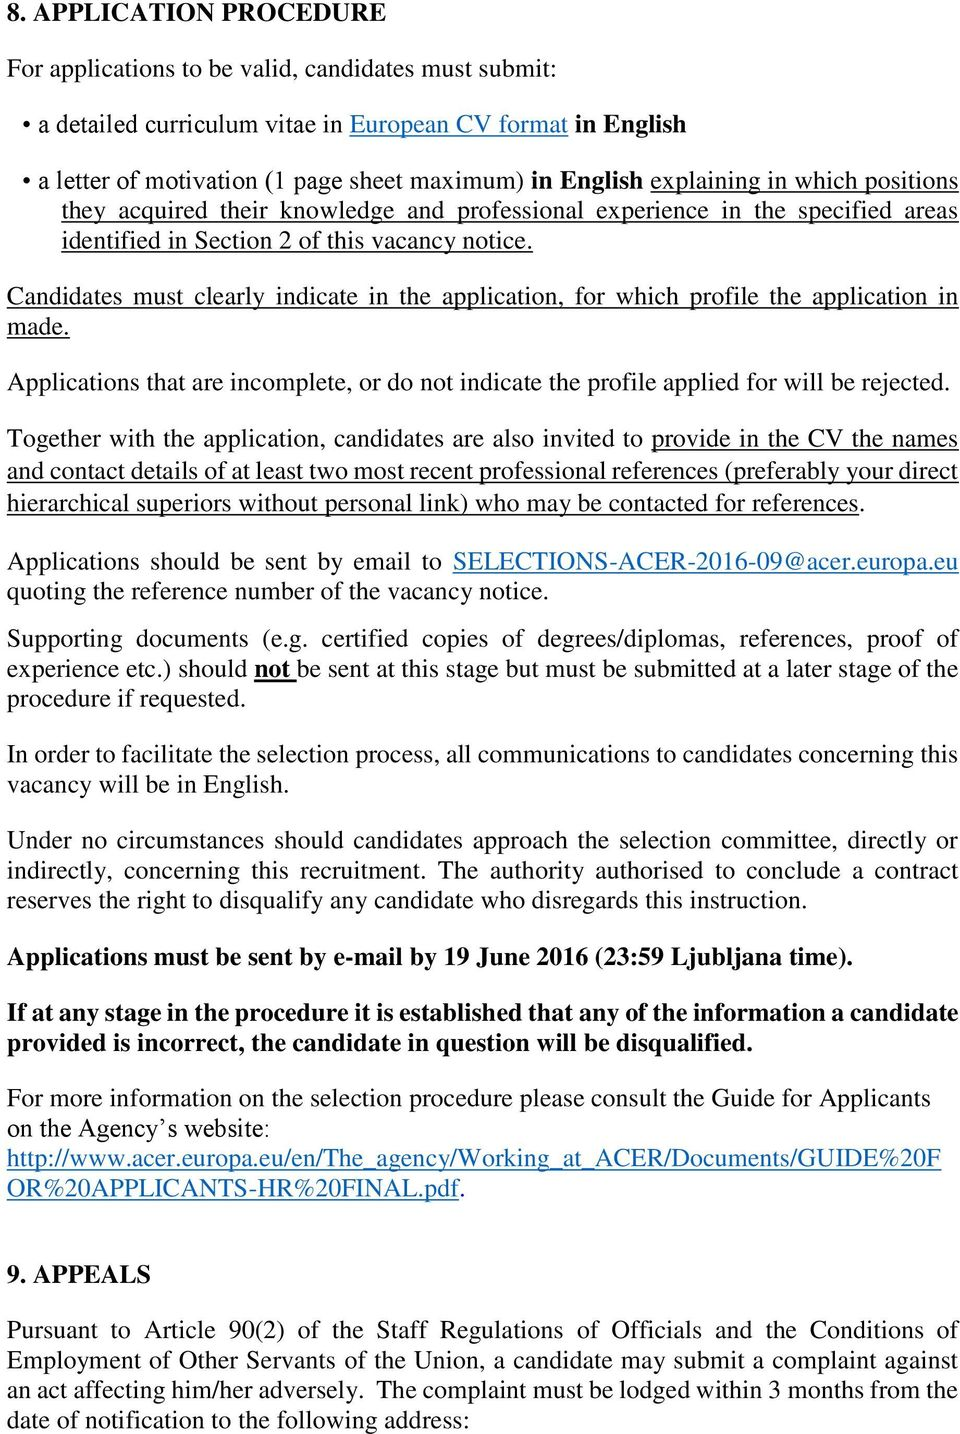 Candidates must clearly indicate in the application, for which profile the application in made. Applications that are incomplete, or do not indicate the profile applied for will be rejected.